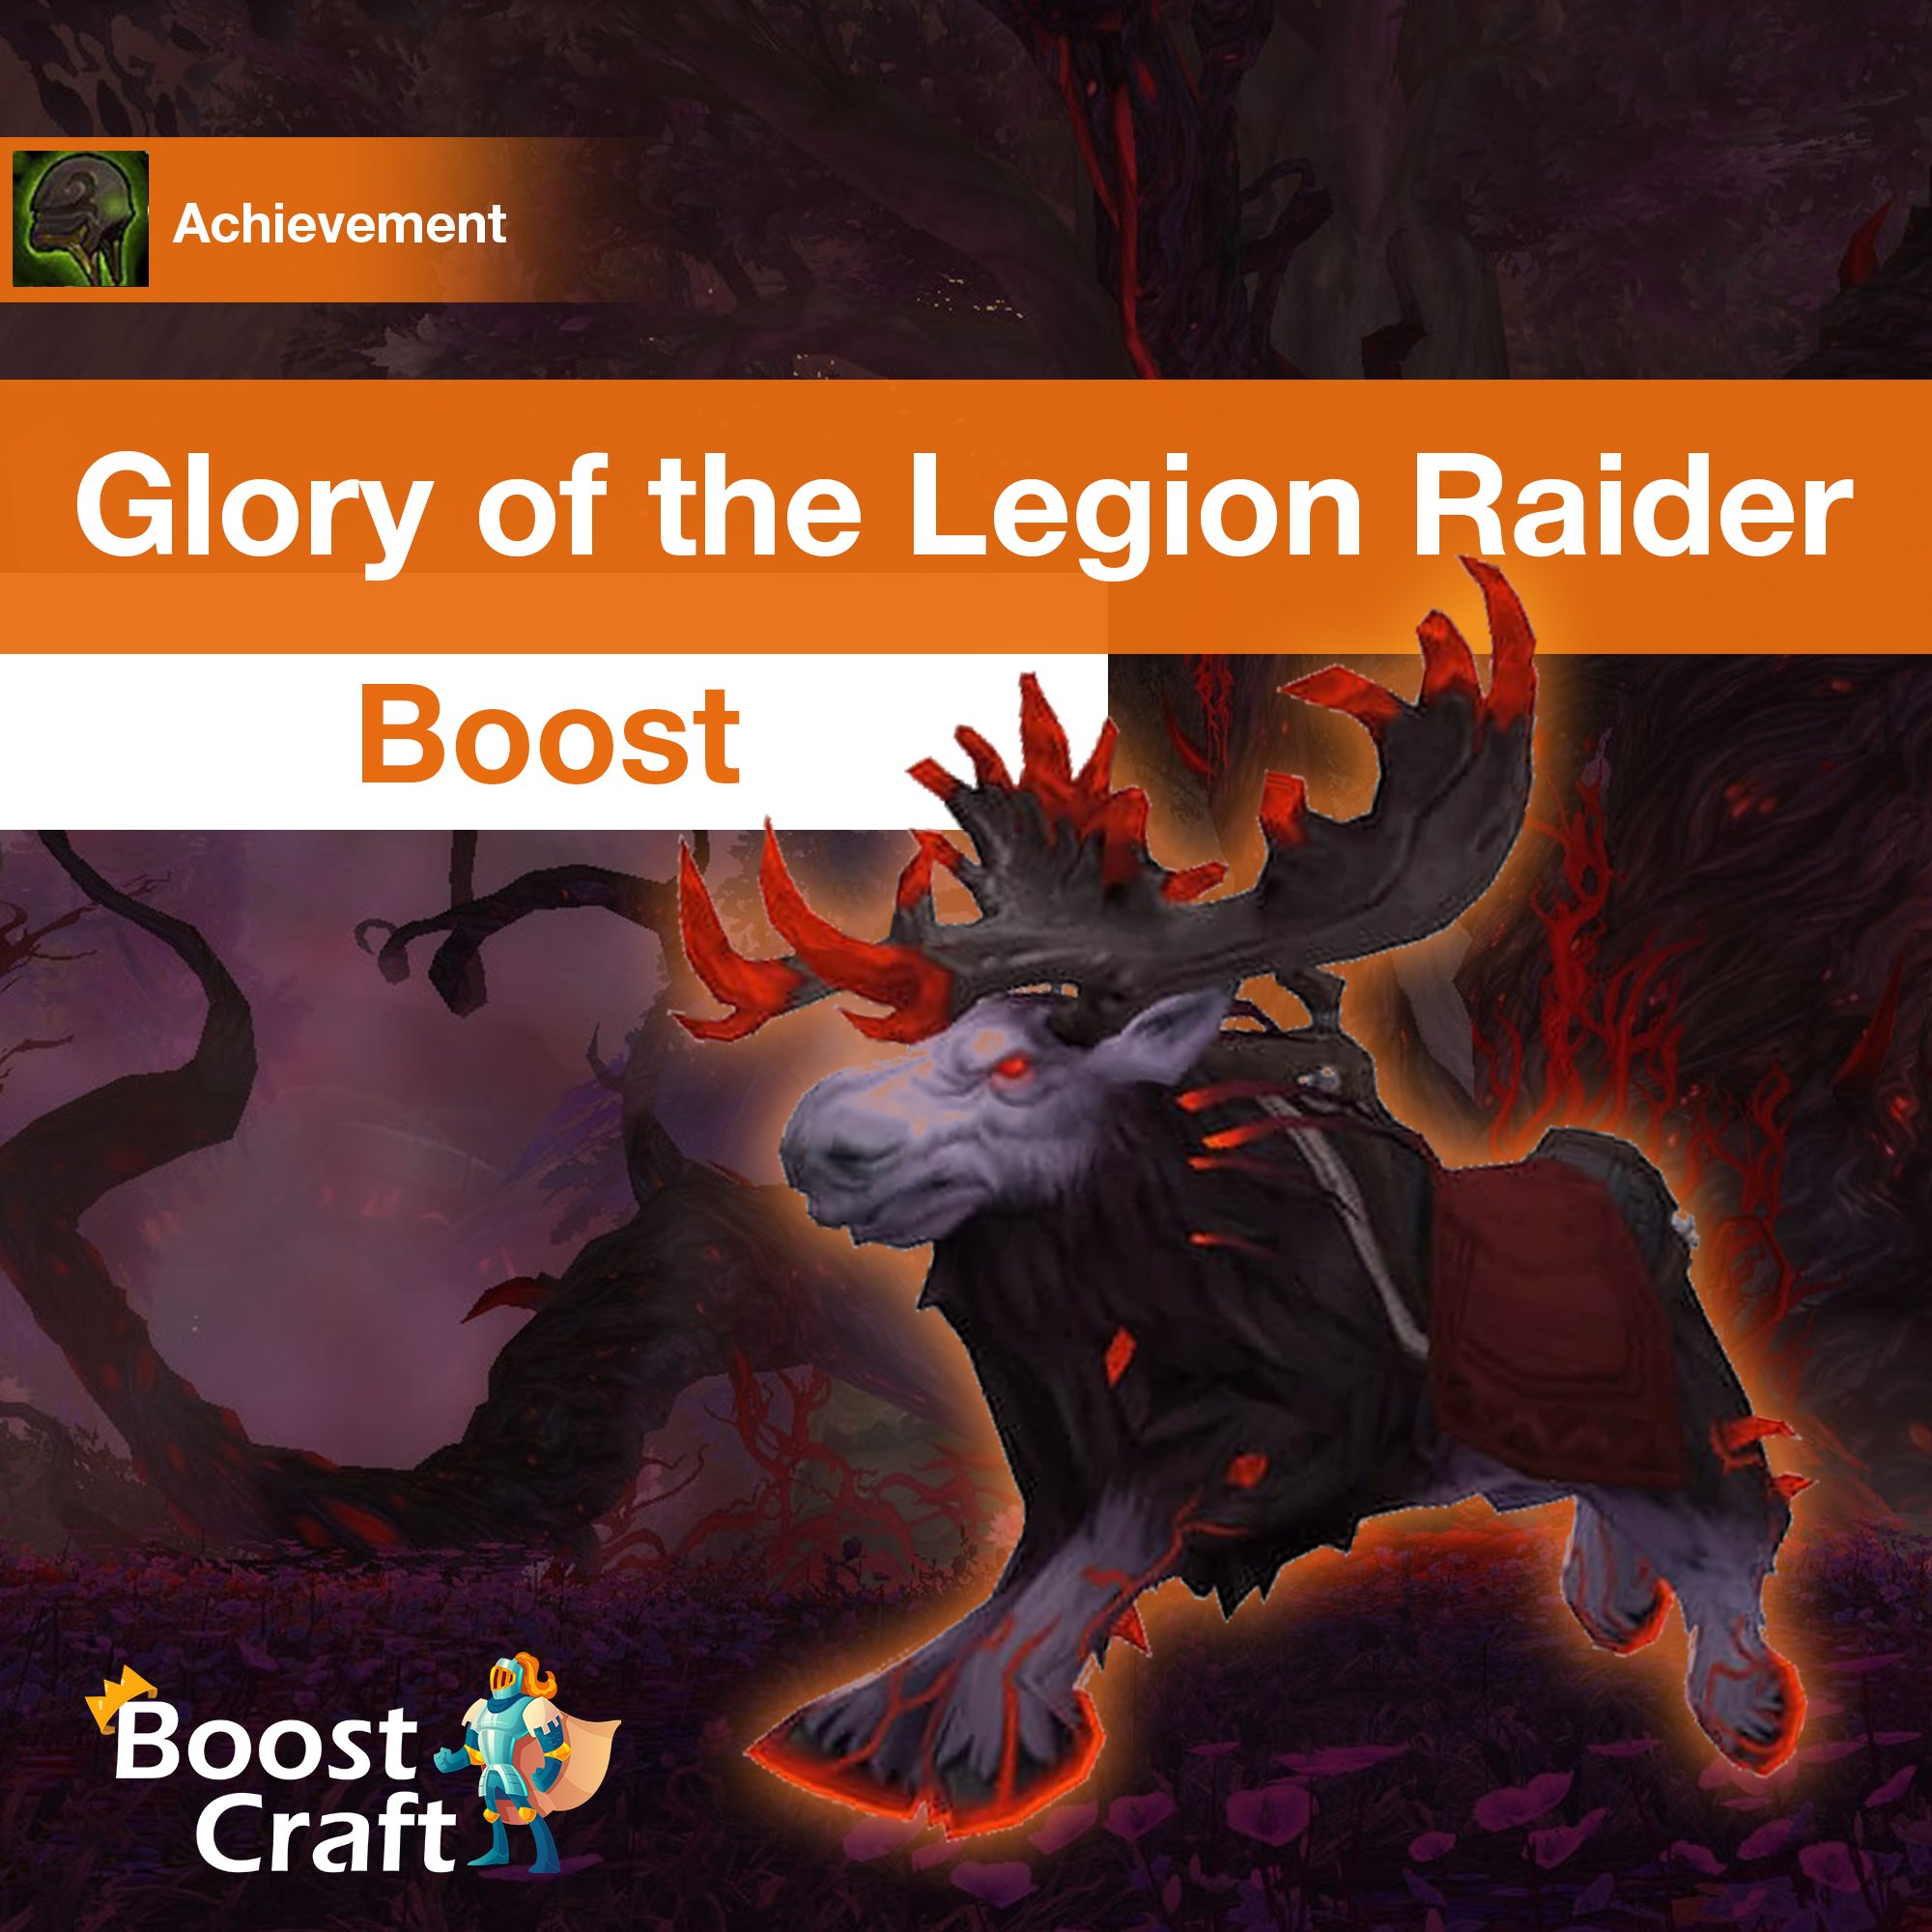 [Glory of the Legion Raider] Boost